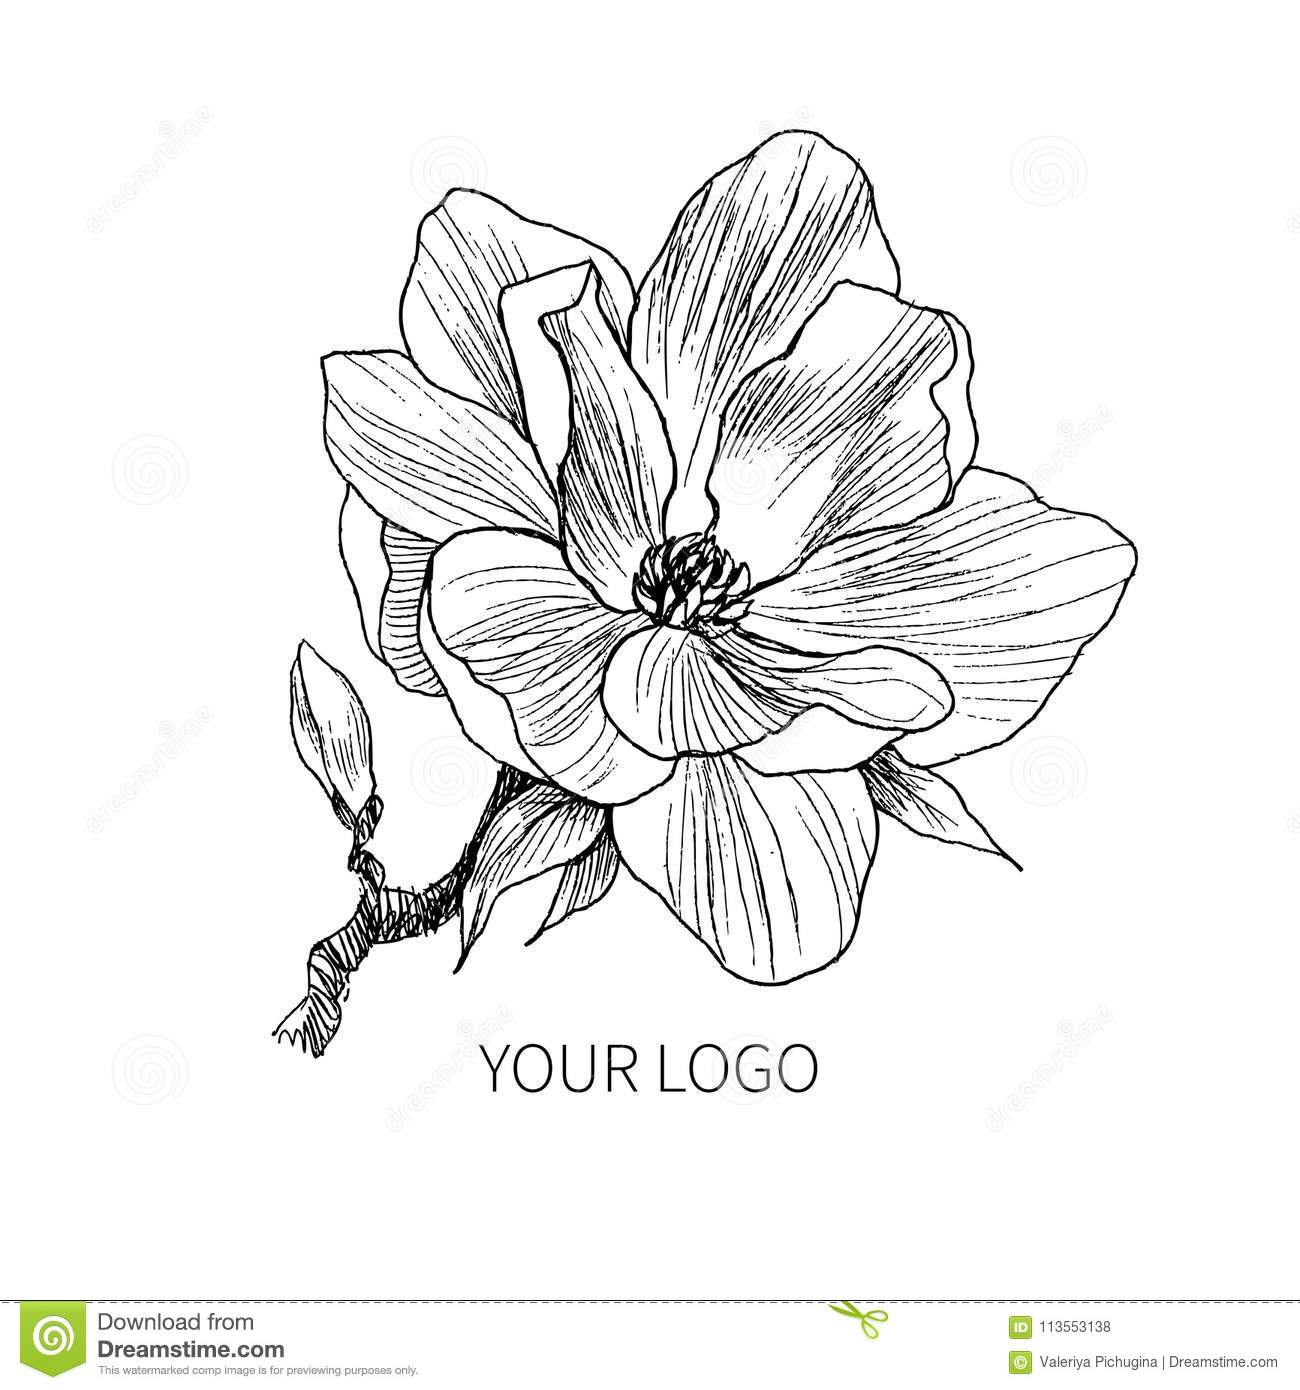 Ink Pencil The Leaves And Flowers Of Magnolia Isolate Line Art Transparent Background Hand